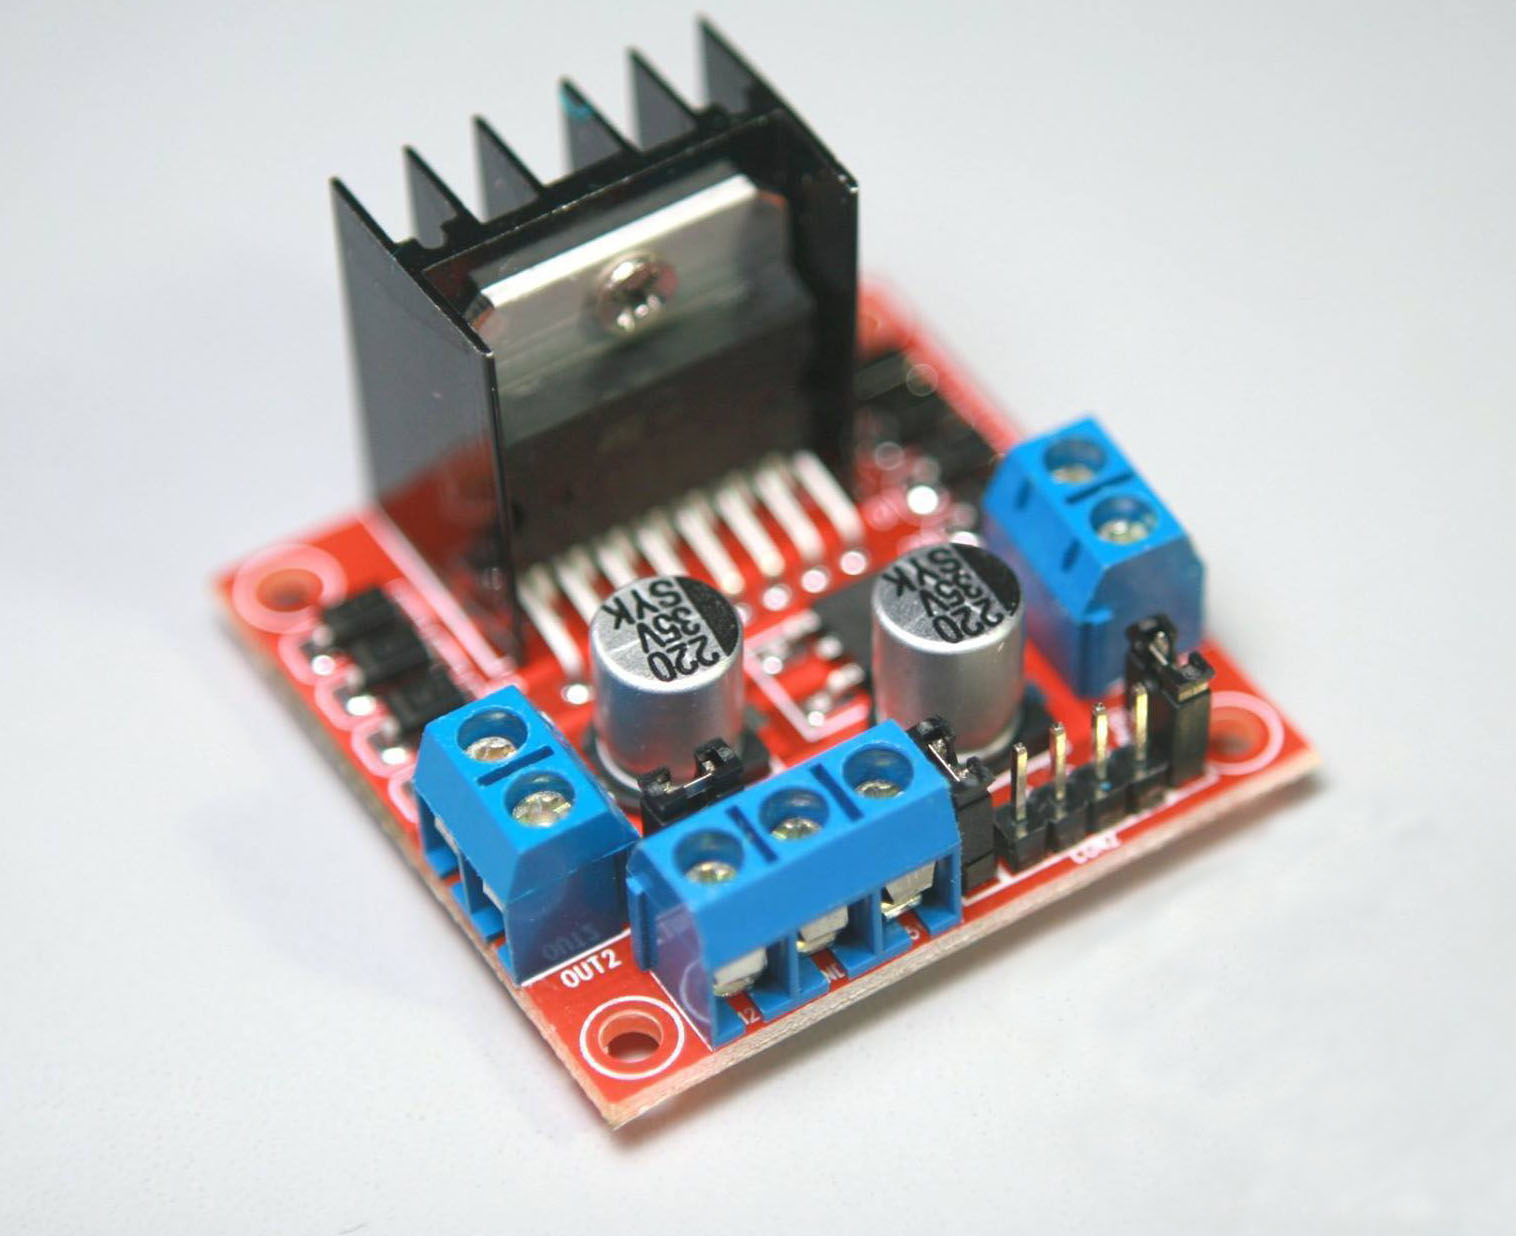 How To Use L298n Motor Driver Teach Me Microcontrollers 8051 Circuit Diagram